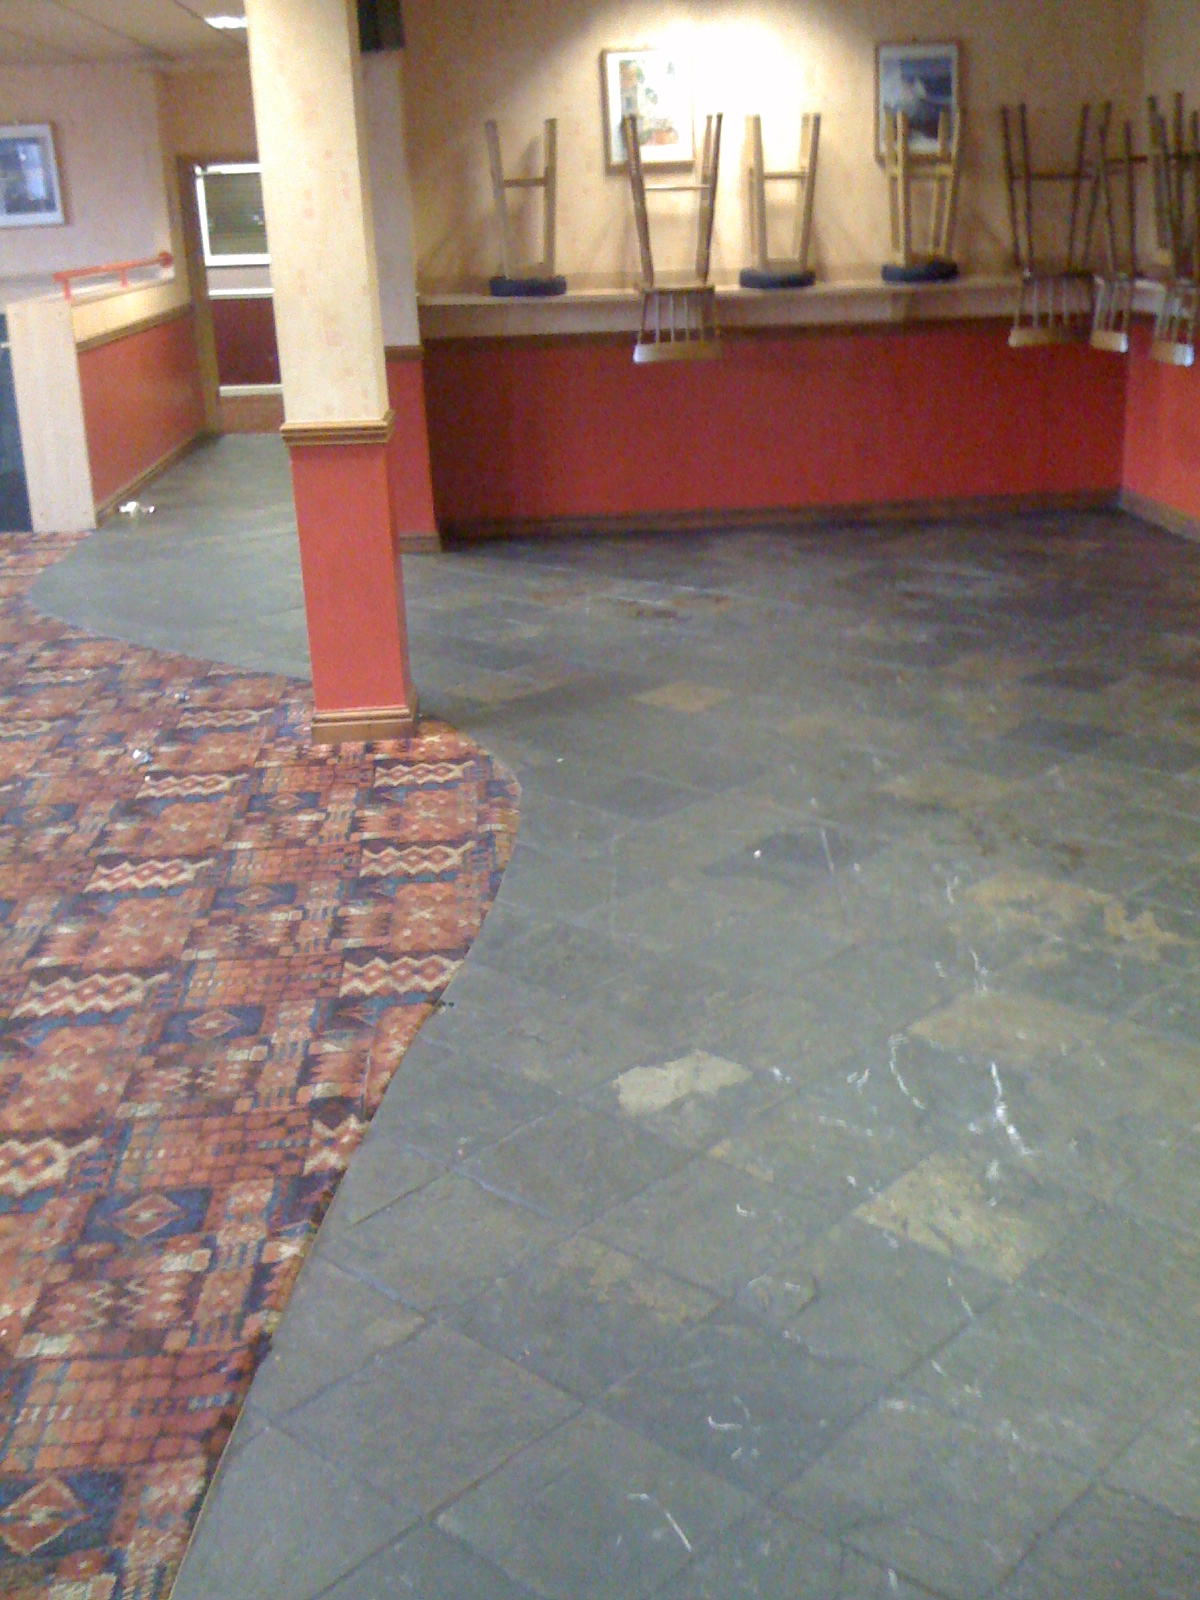 Slate Floor in a workings mens club in desperate need of a clean and seal